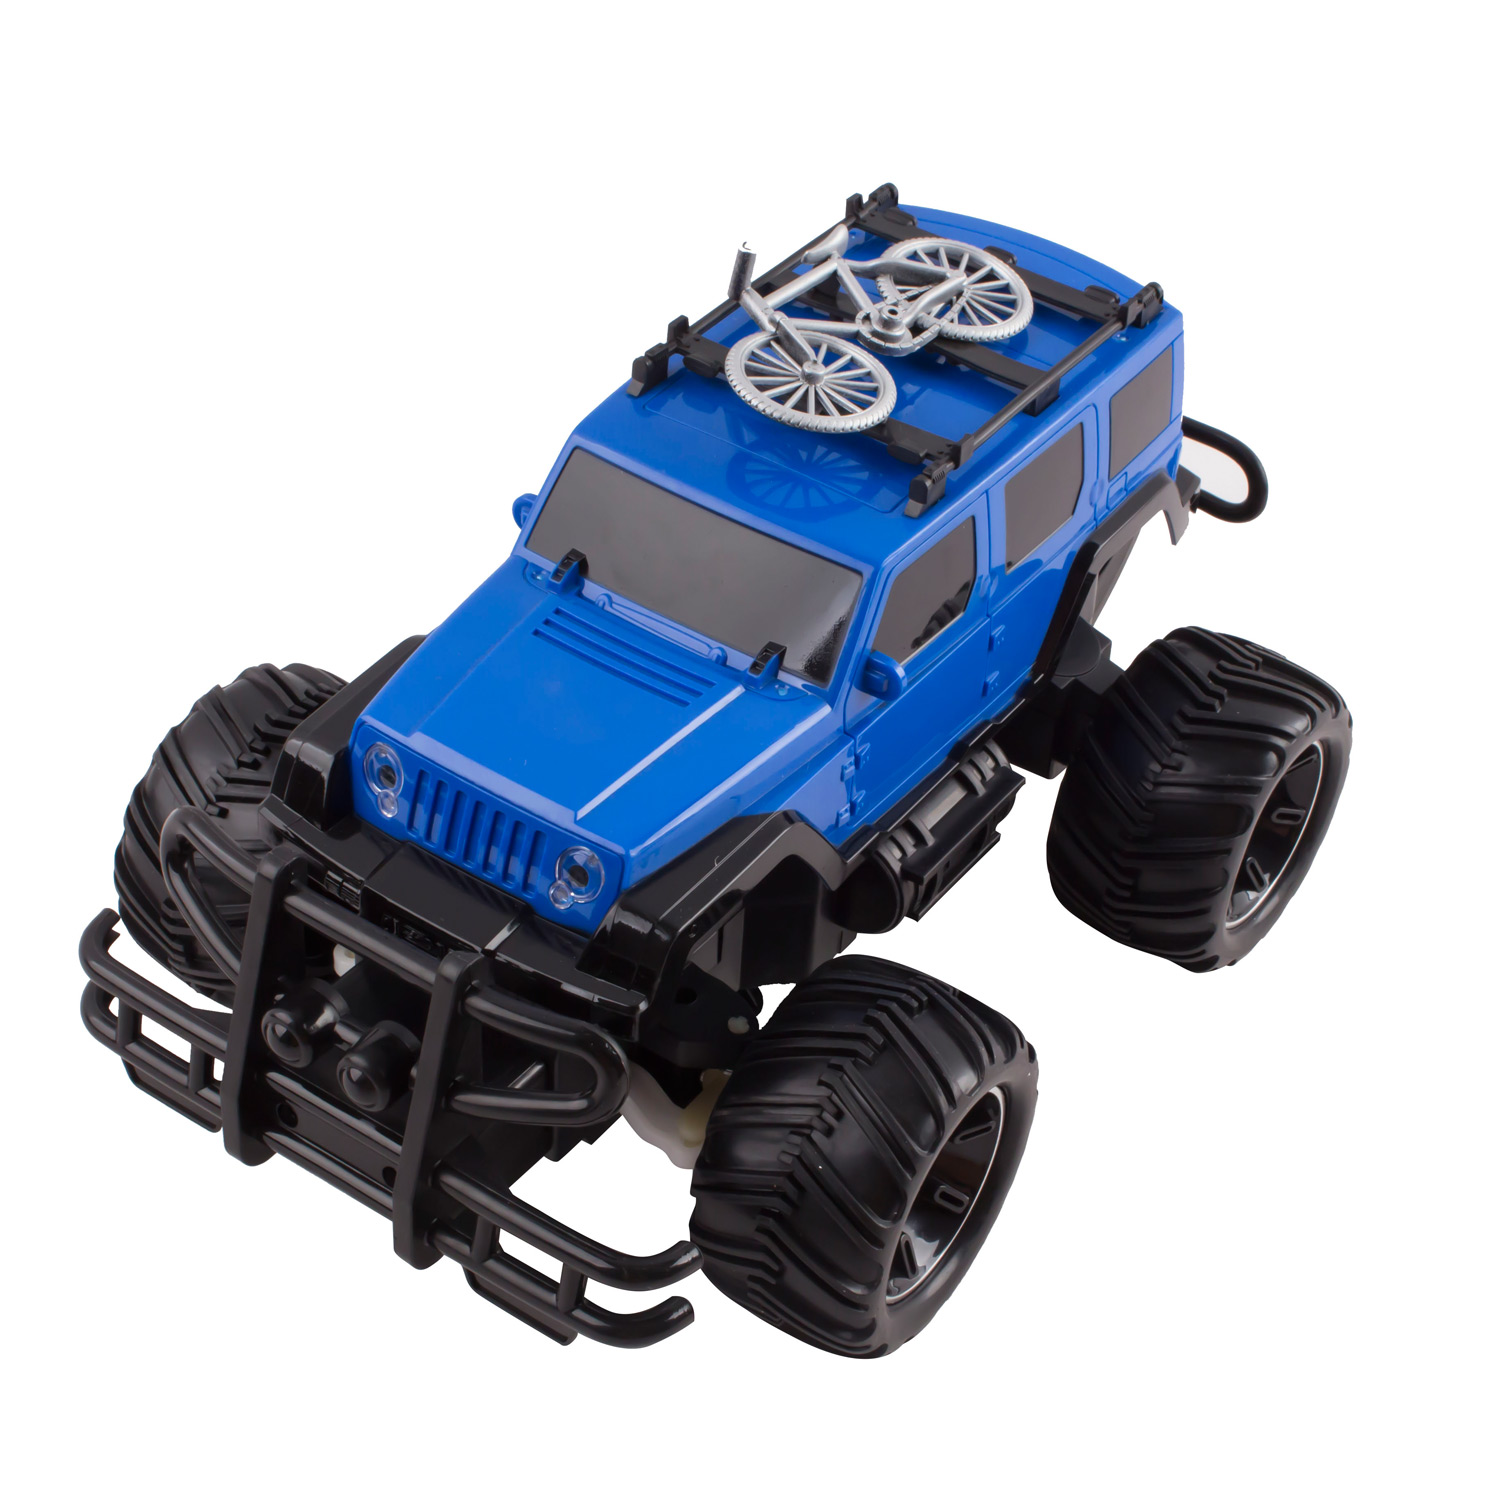 RC Truck Jeep Big Wheel Monster Remote Control Car With LED Headlights Ready to Run Includes Rechargeable Battery 116 Size Off-Road Beast Buggy Toy Blue